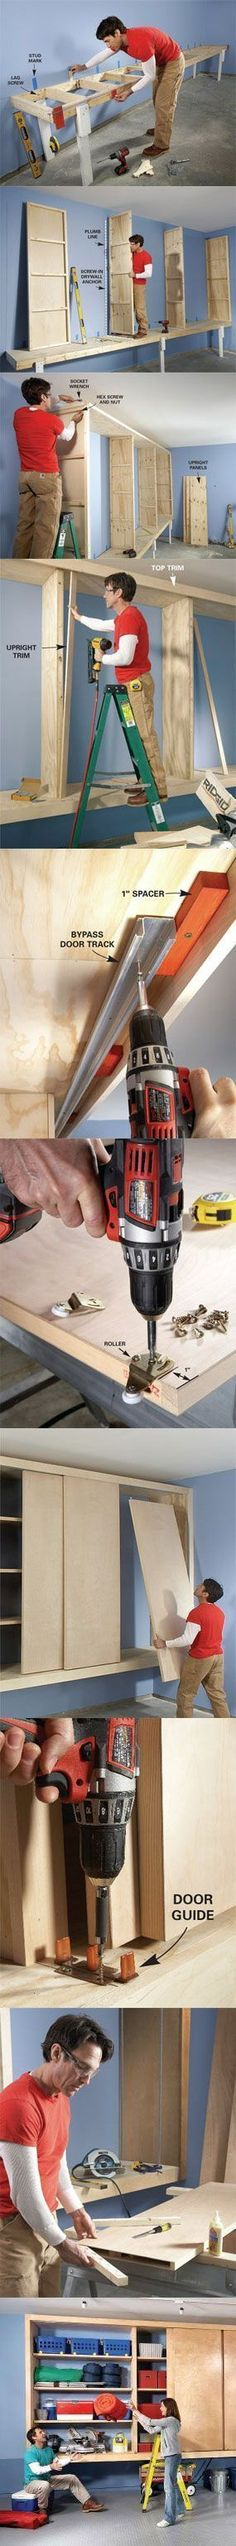 Learn how to build a giant garage cabinet at www.familyhandyman.com/DIY-Projects/Home-Organization/Garage-Storage/giant-diy-garage-cabinet/View-All